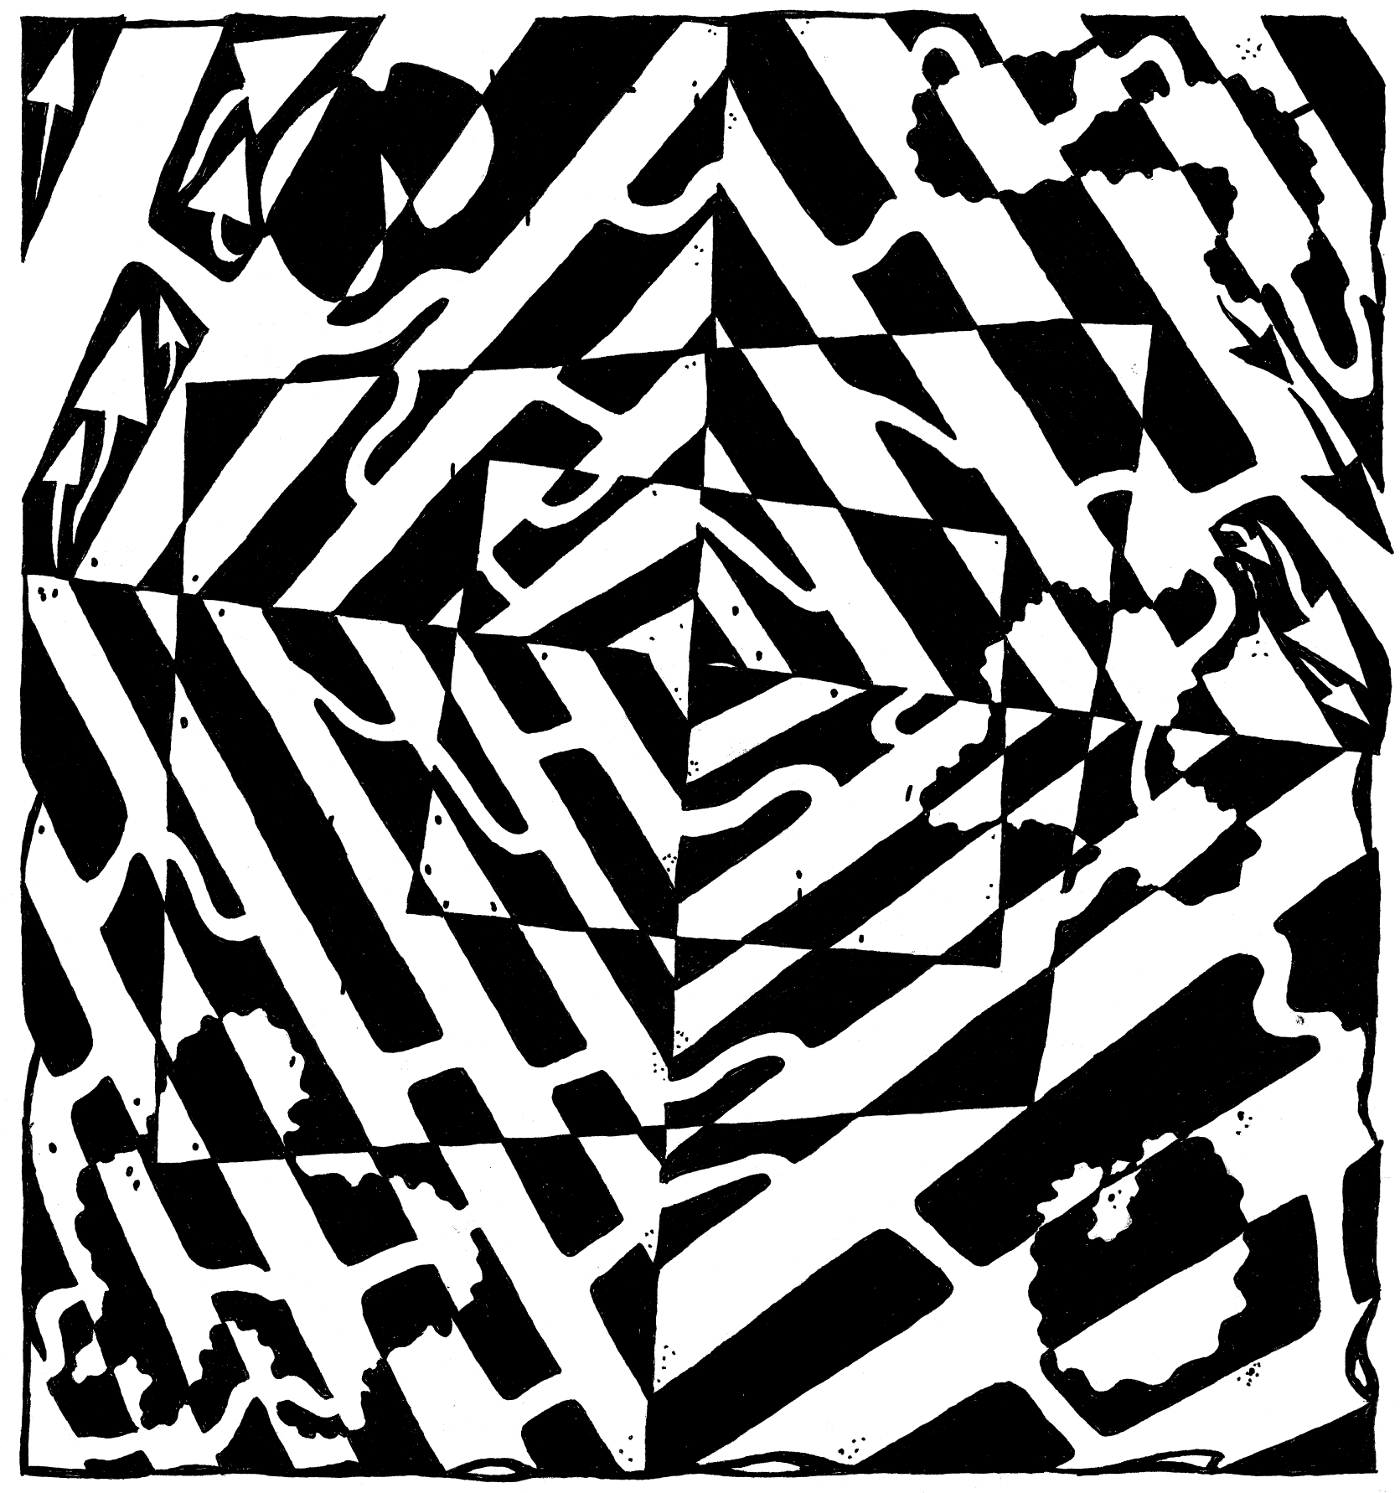 optical maze chaos illusion mazes ink frimer yonatan drawing artist blot painting illusions awesome mantra artists teamofmonkeys solution cartoons editorial